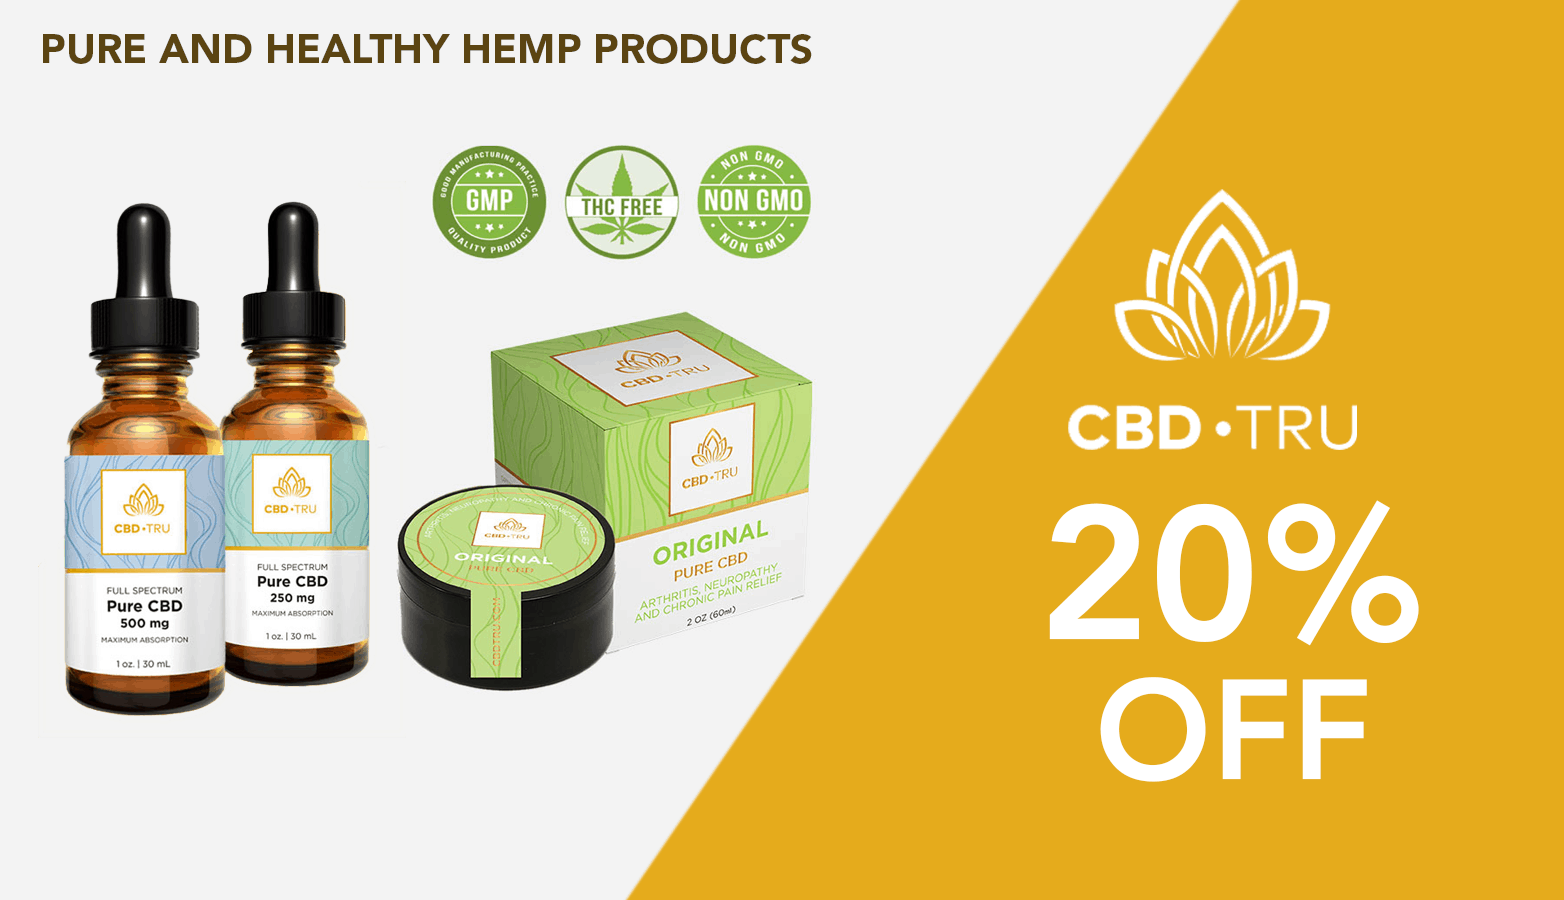 CBD•TRU CBD Coupon Code discounts promos save on cannabis online Website